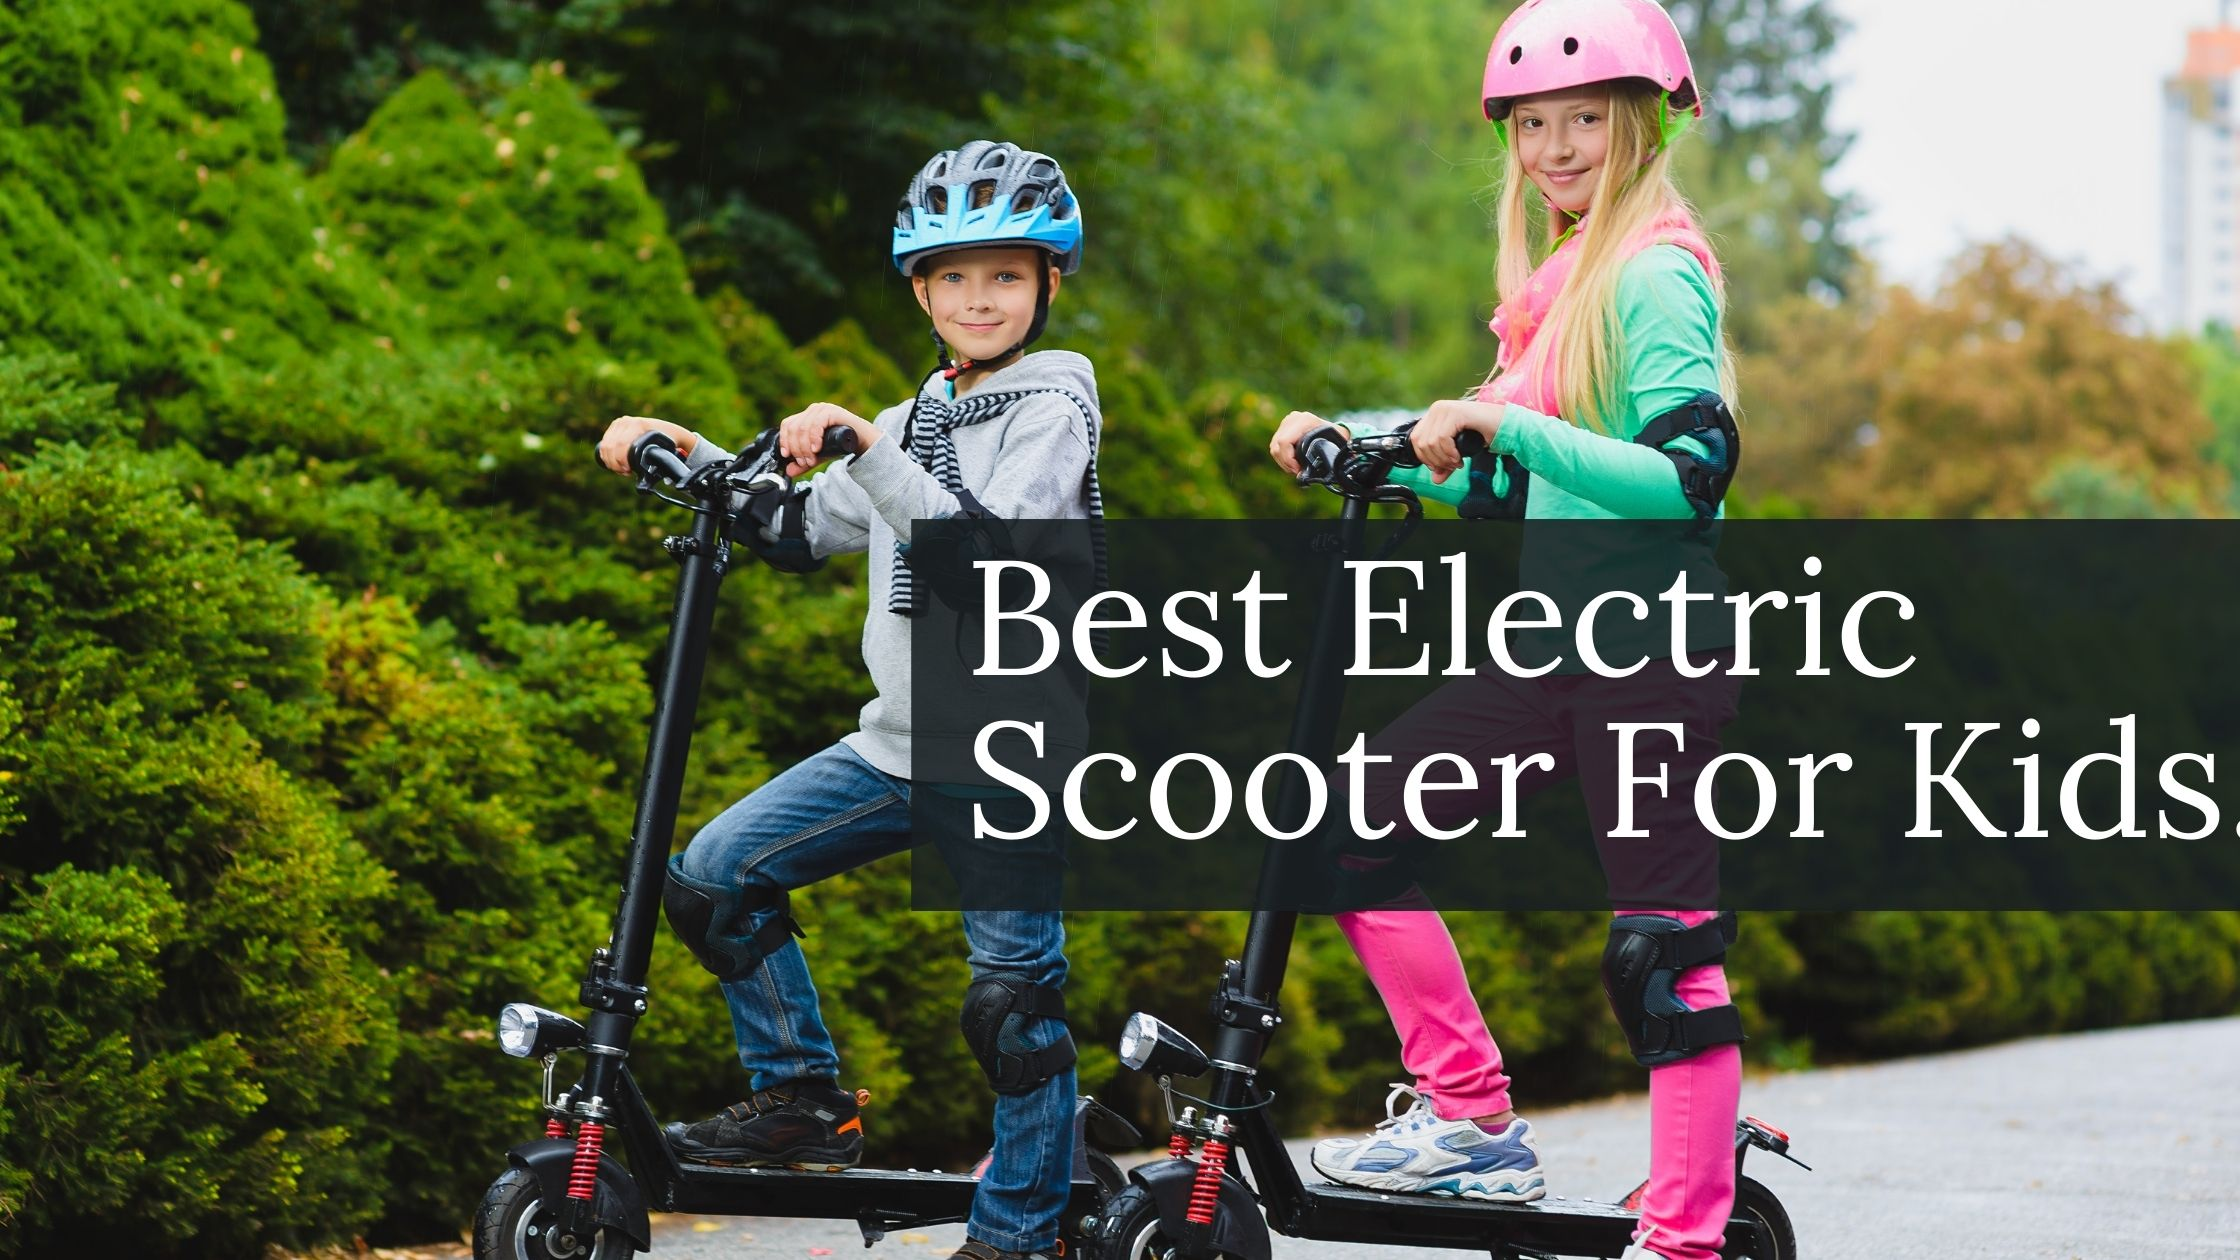 best electric scooter for kids.